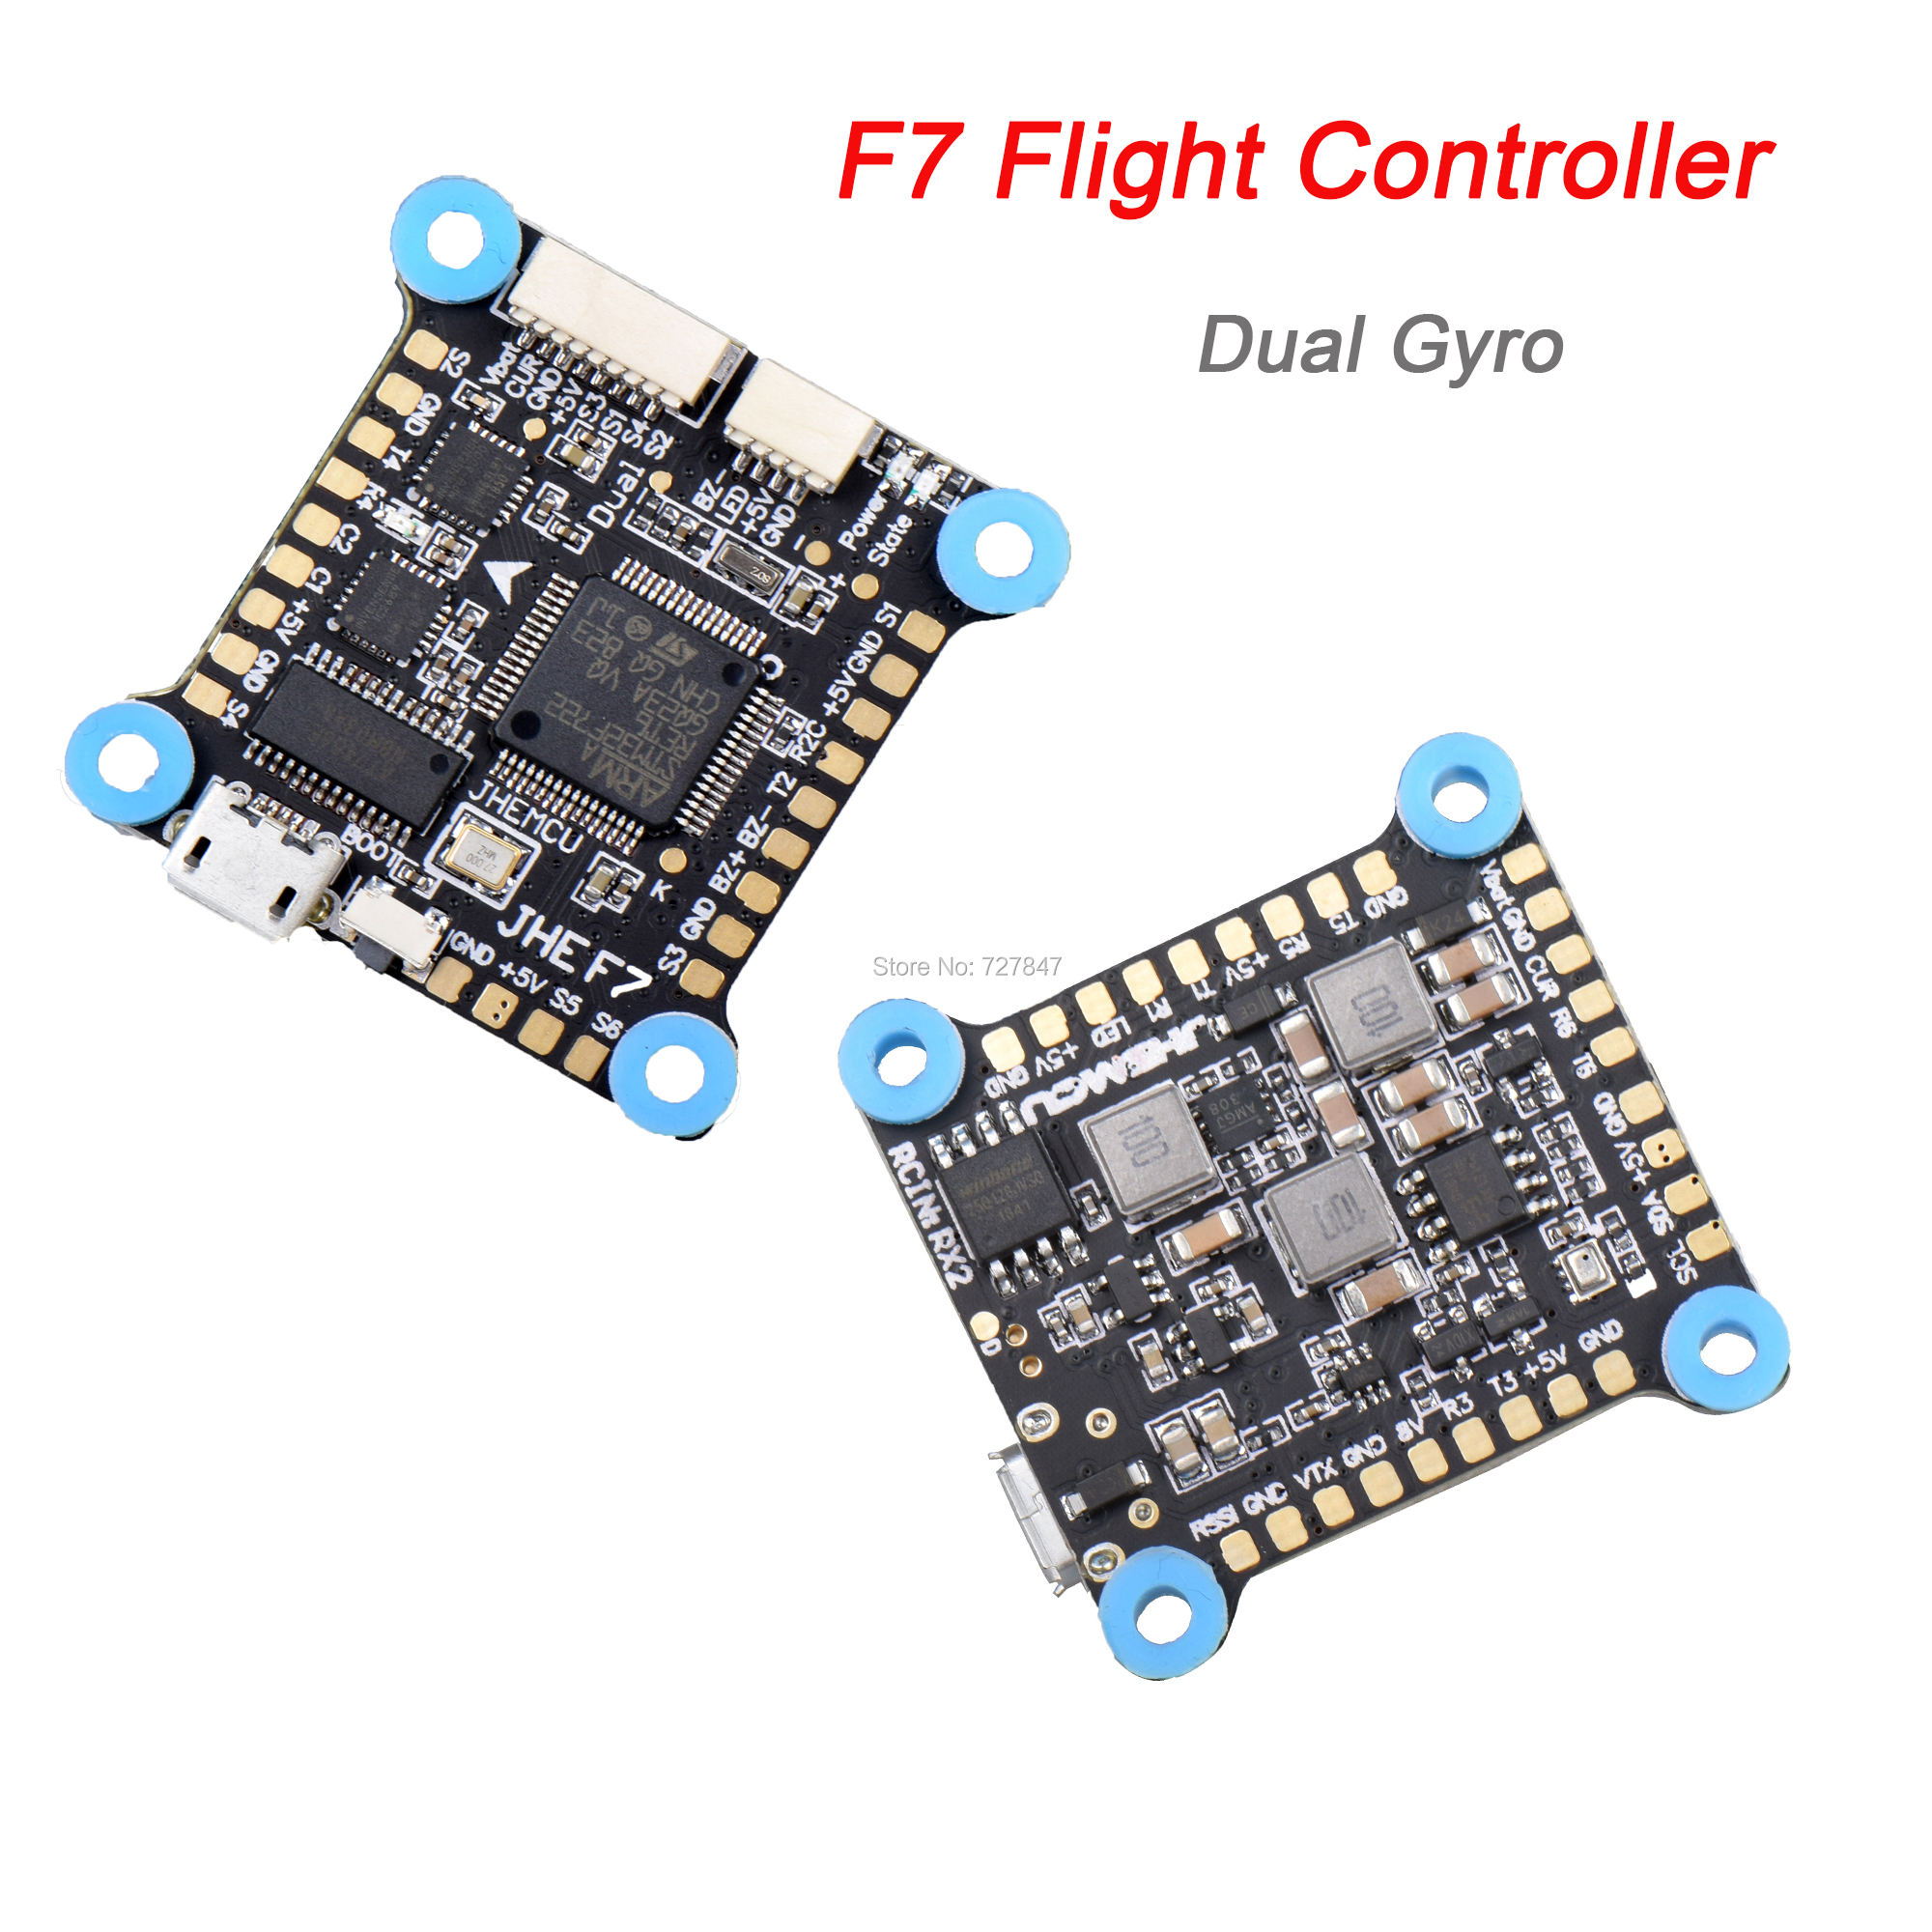 NEW F7 Flight Controller Dual Gyro AIO OSD 5V 8V BEC & Black Box 2-6S for RC Drone FPV Racing Multicopter